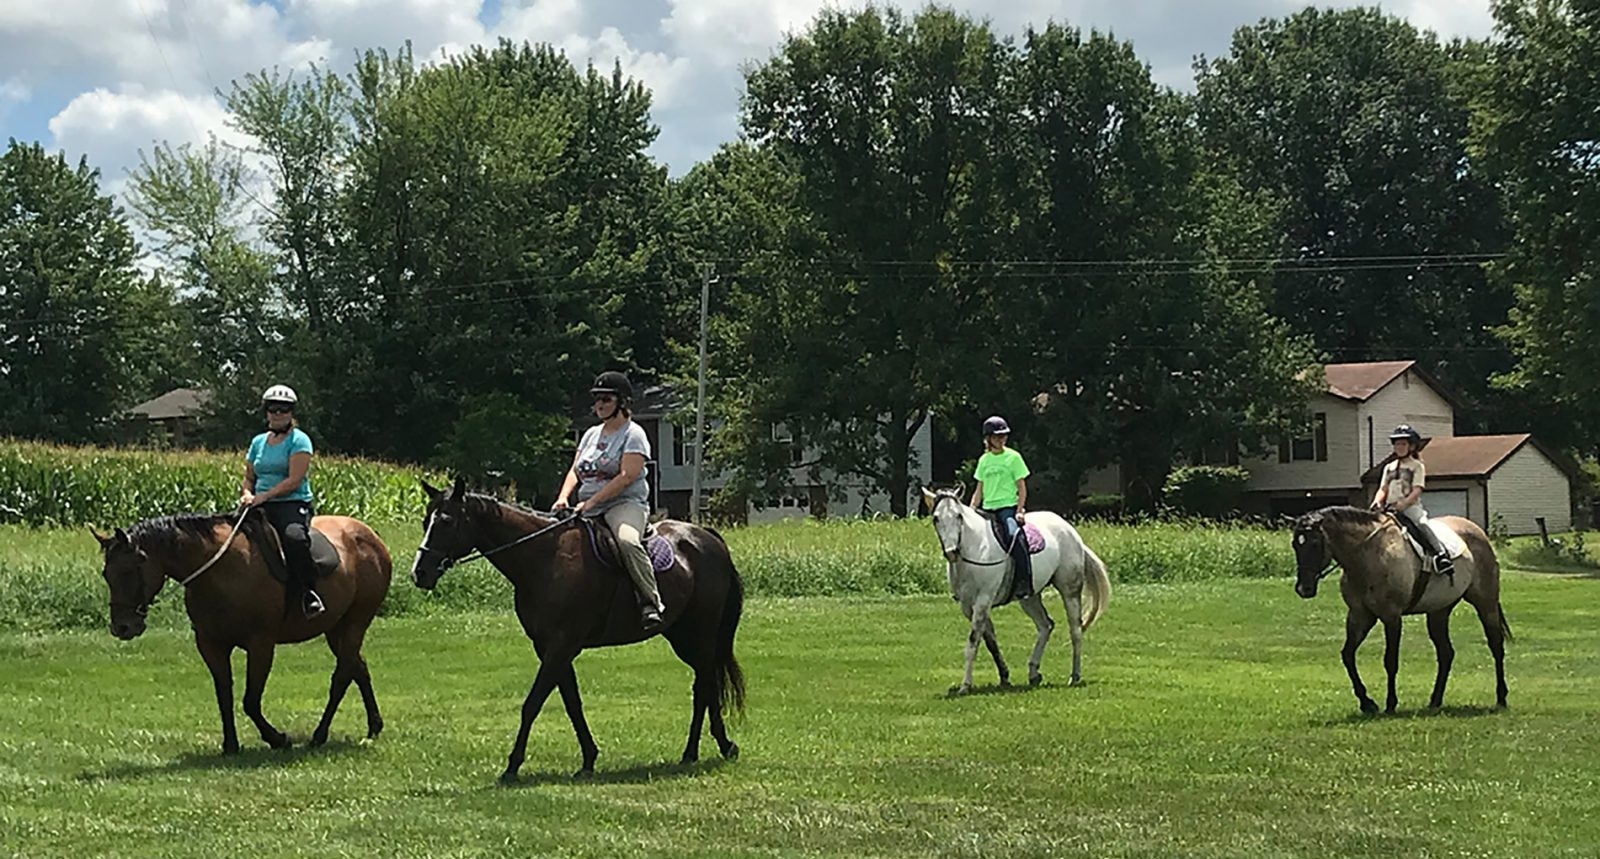 Equestrian Center at Beverly Farm. Four trail riders.